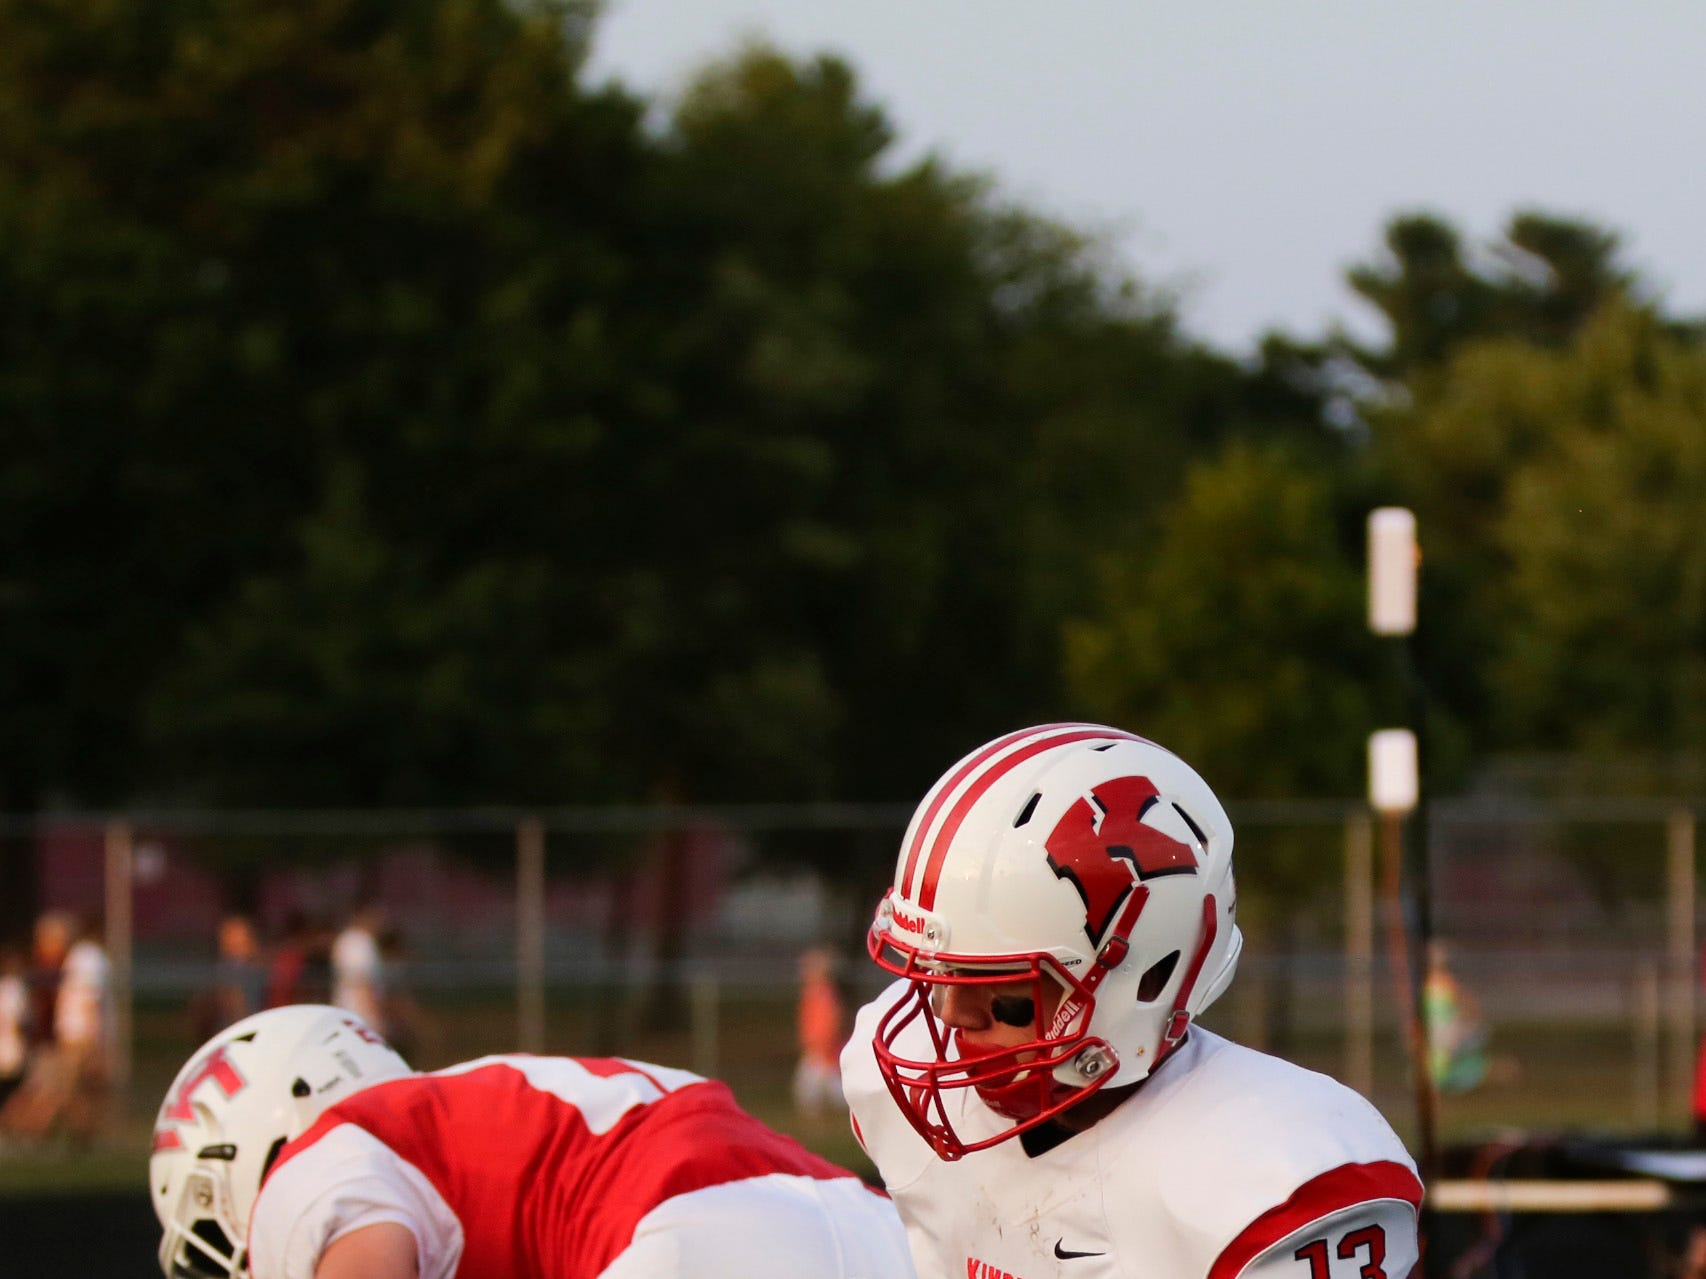 Kimberly's Zach Lechnir (13) scores a touchdown during a game between Wisconsin Rapids and Kimberly at Wisconsin Rapids Lincoln High School Thursday, August 23, 2018.